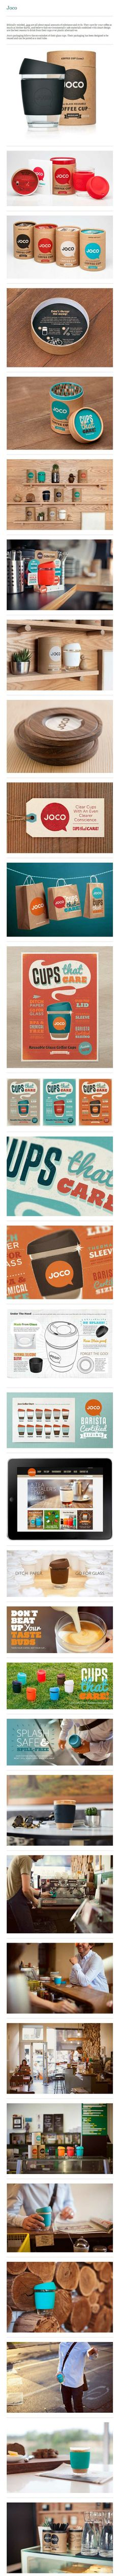 Joco coffee #packaging